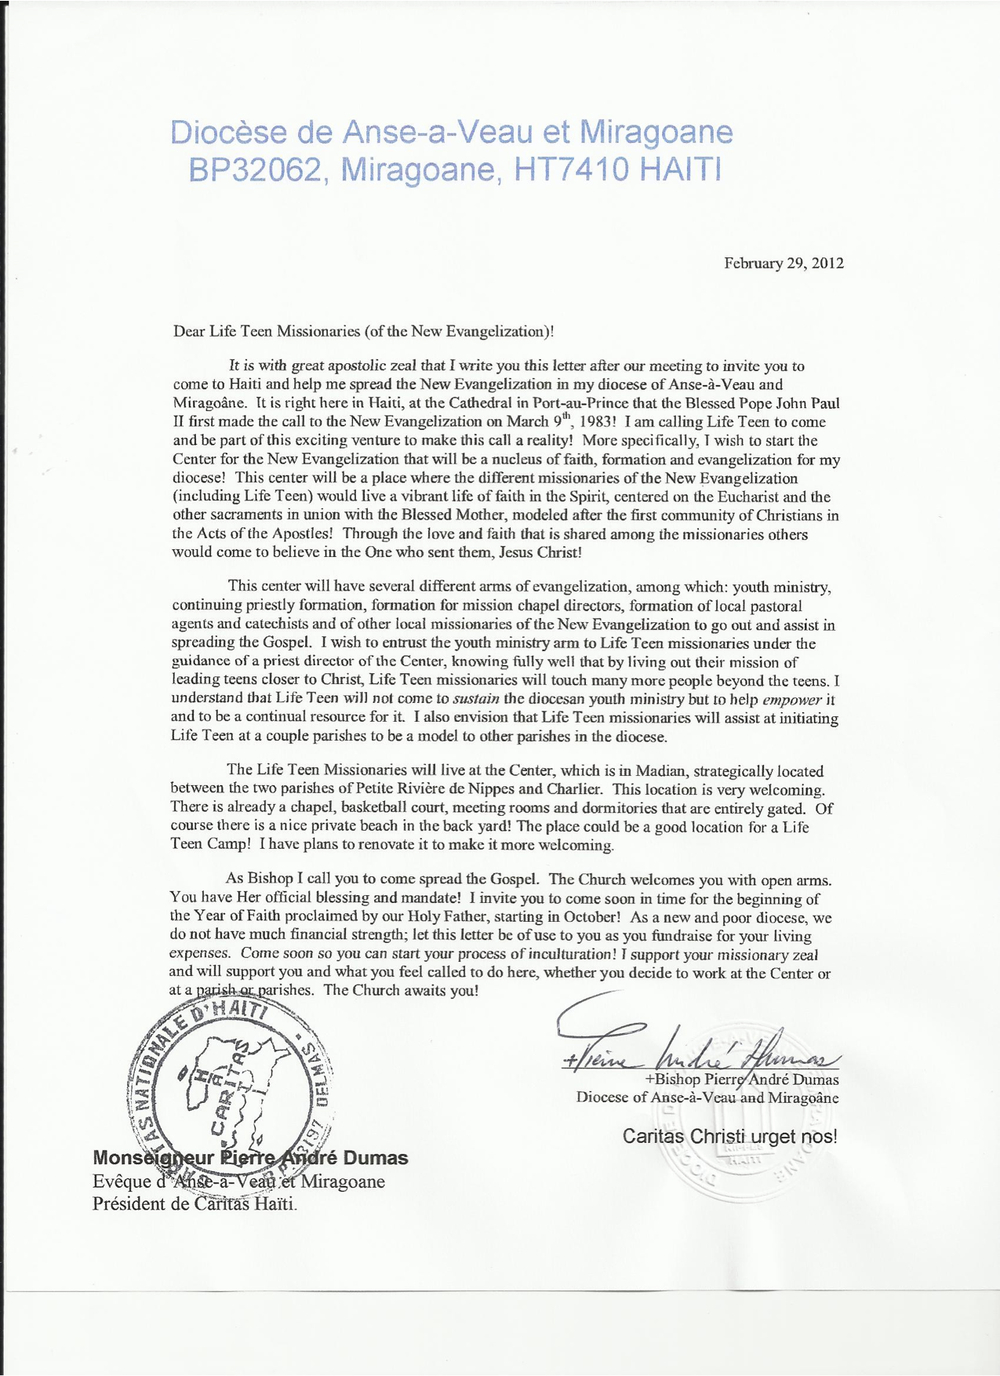 Msgr. Dumas's invitation to Haiti!